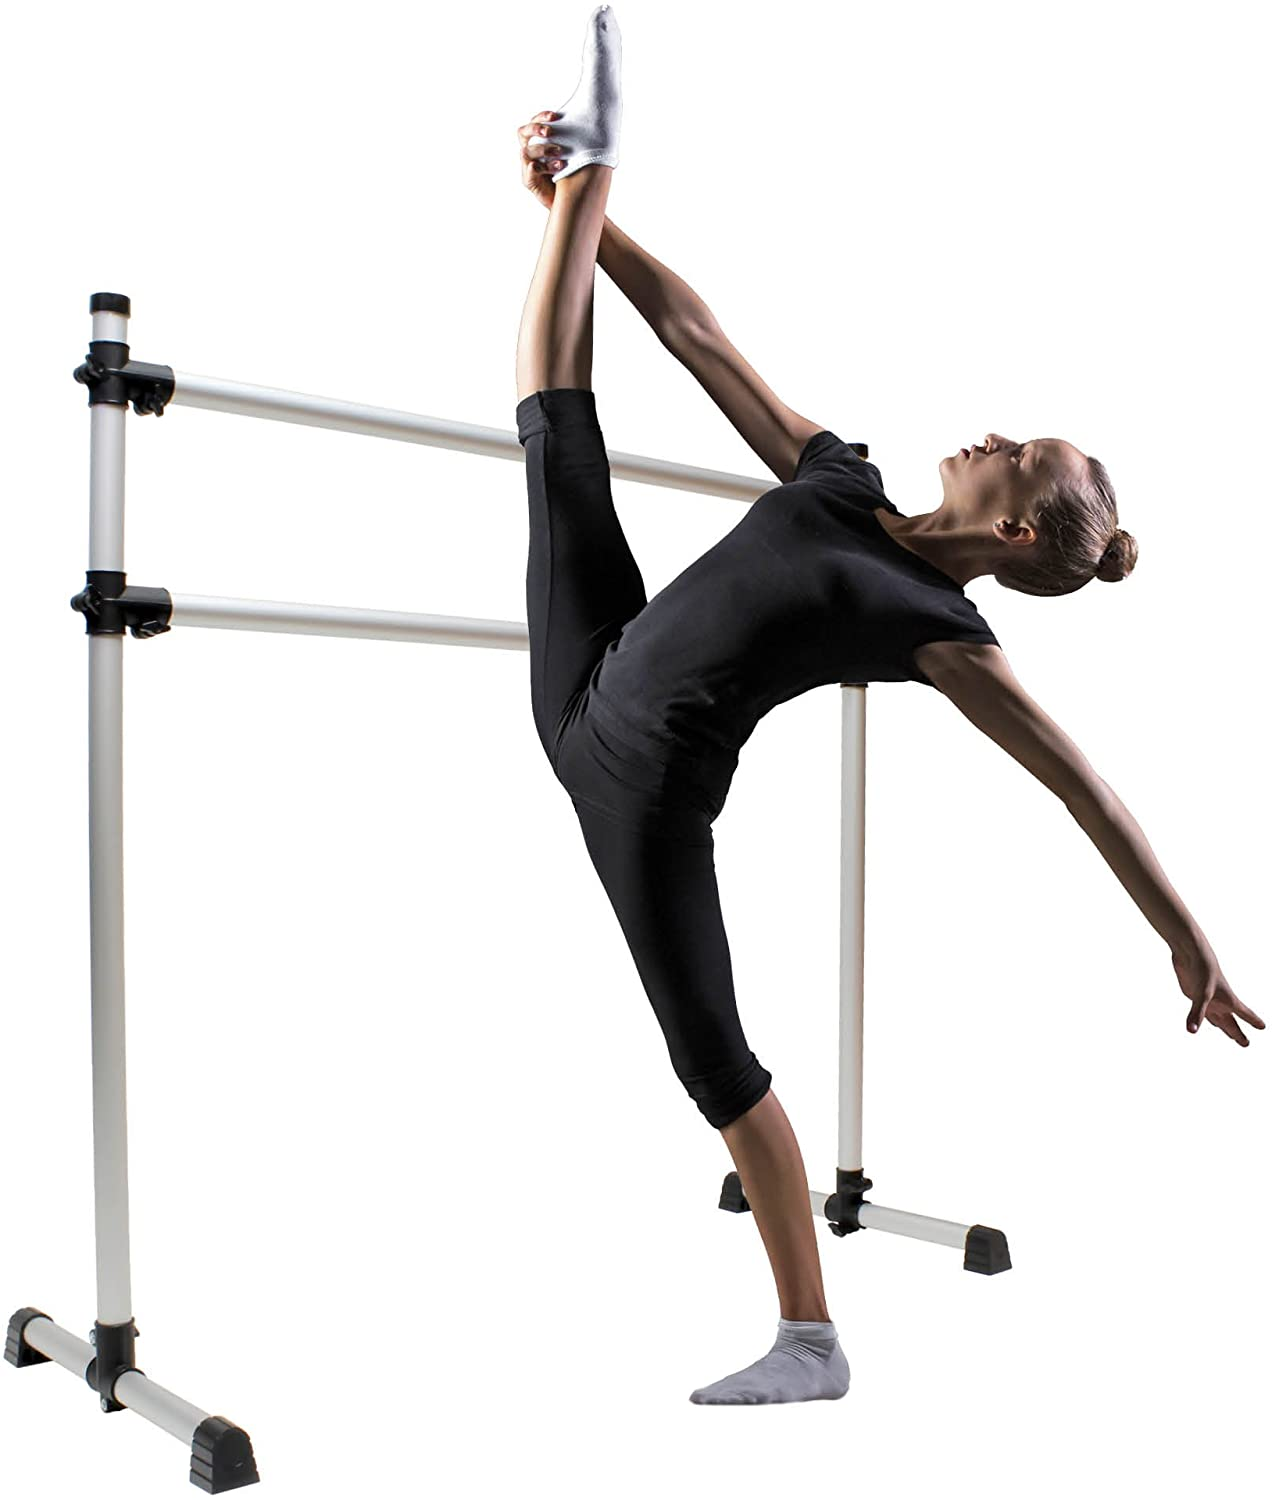 Get Out! Ballet Barre Portable for Home or Studio - Ballet Bar Portable Dance Barre, Ballet Barre Freestanding Equipment